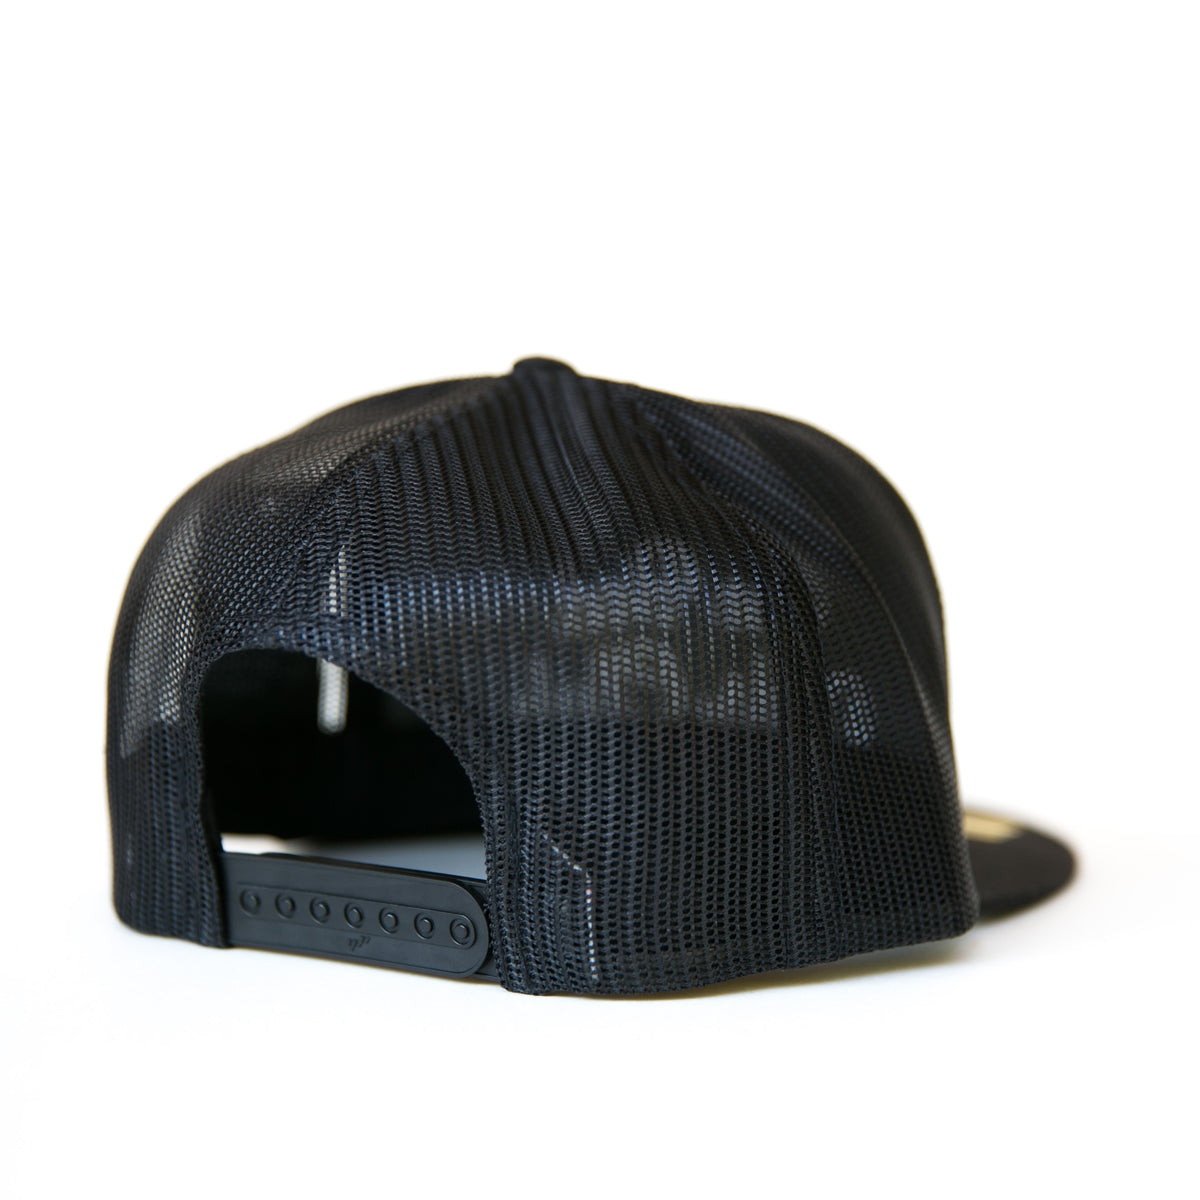 BAD DADS ARCH LOGO BLACK CAMO SNAPBACK